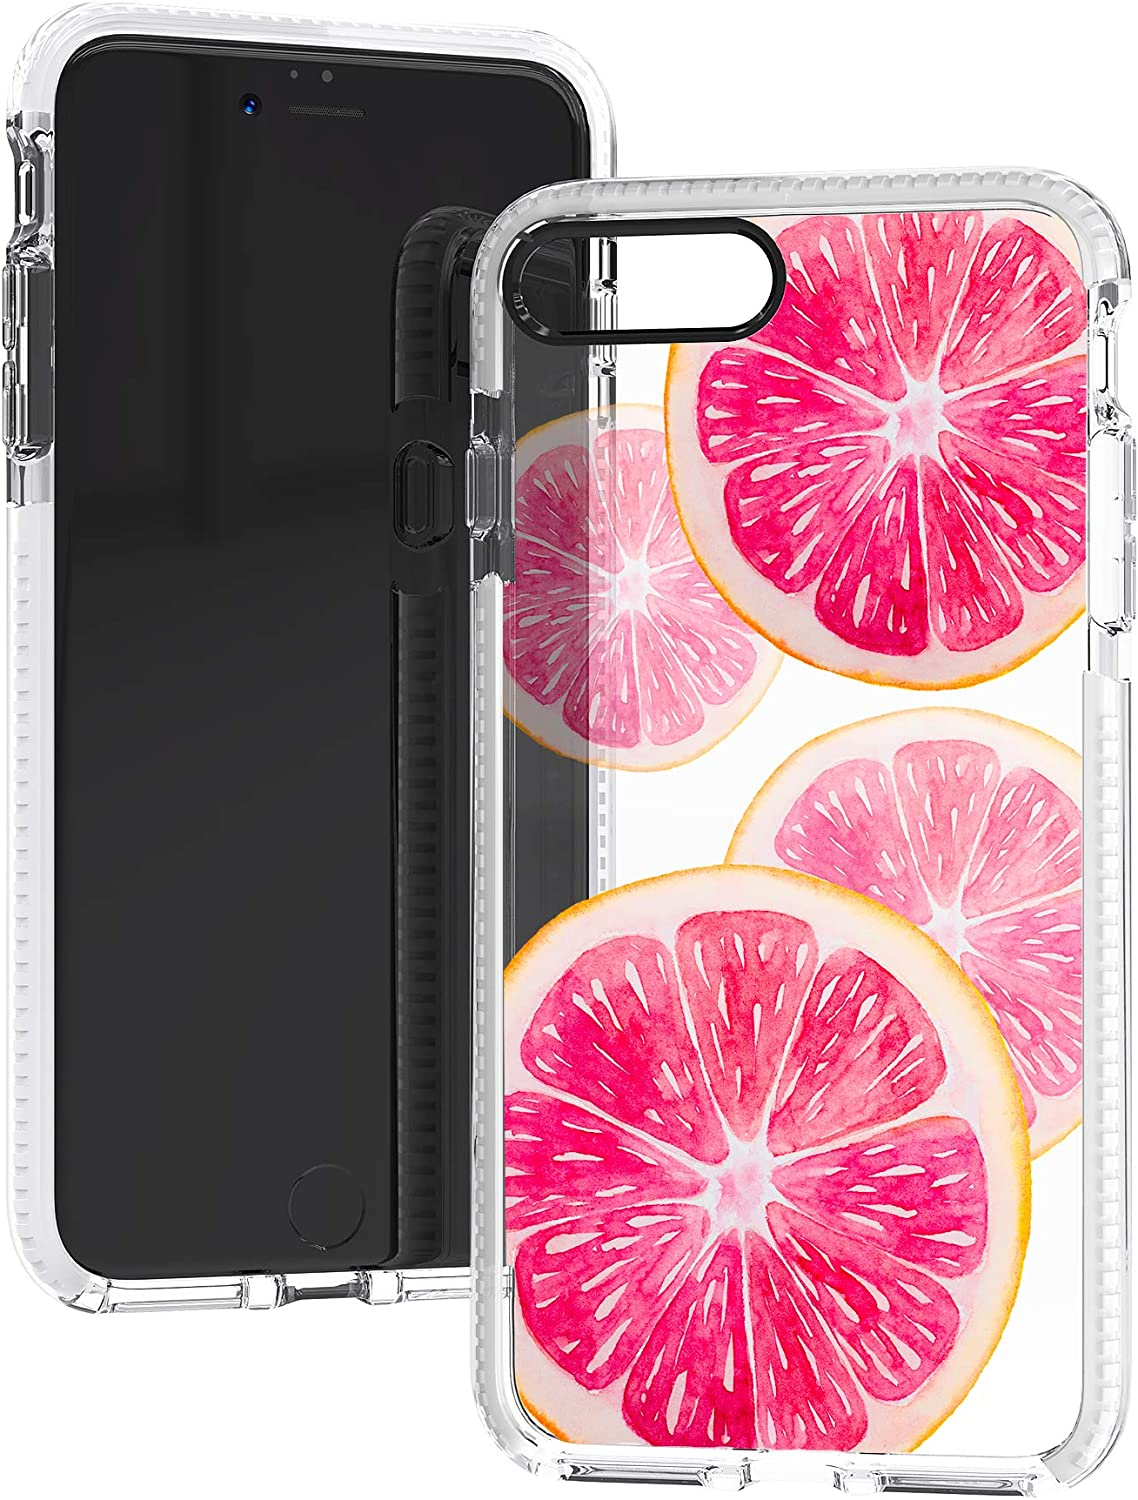 iPhone 7 Plus Case,iPhone 8 Plus Case,Pink Peach Sweet Fruits Orange Grapefruits Summer Tropical Beach Trendy Cute Girls Soft Protective Clear Case with Design Compatible for iPhone 7 Plus/8 Plus